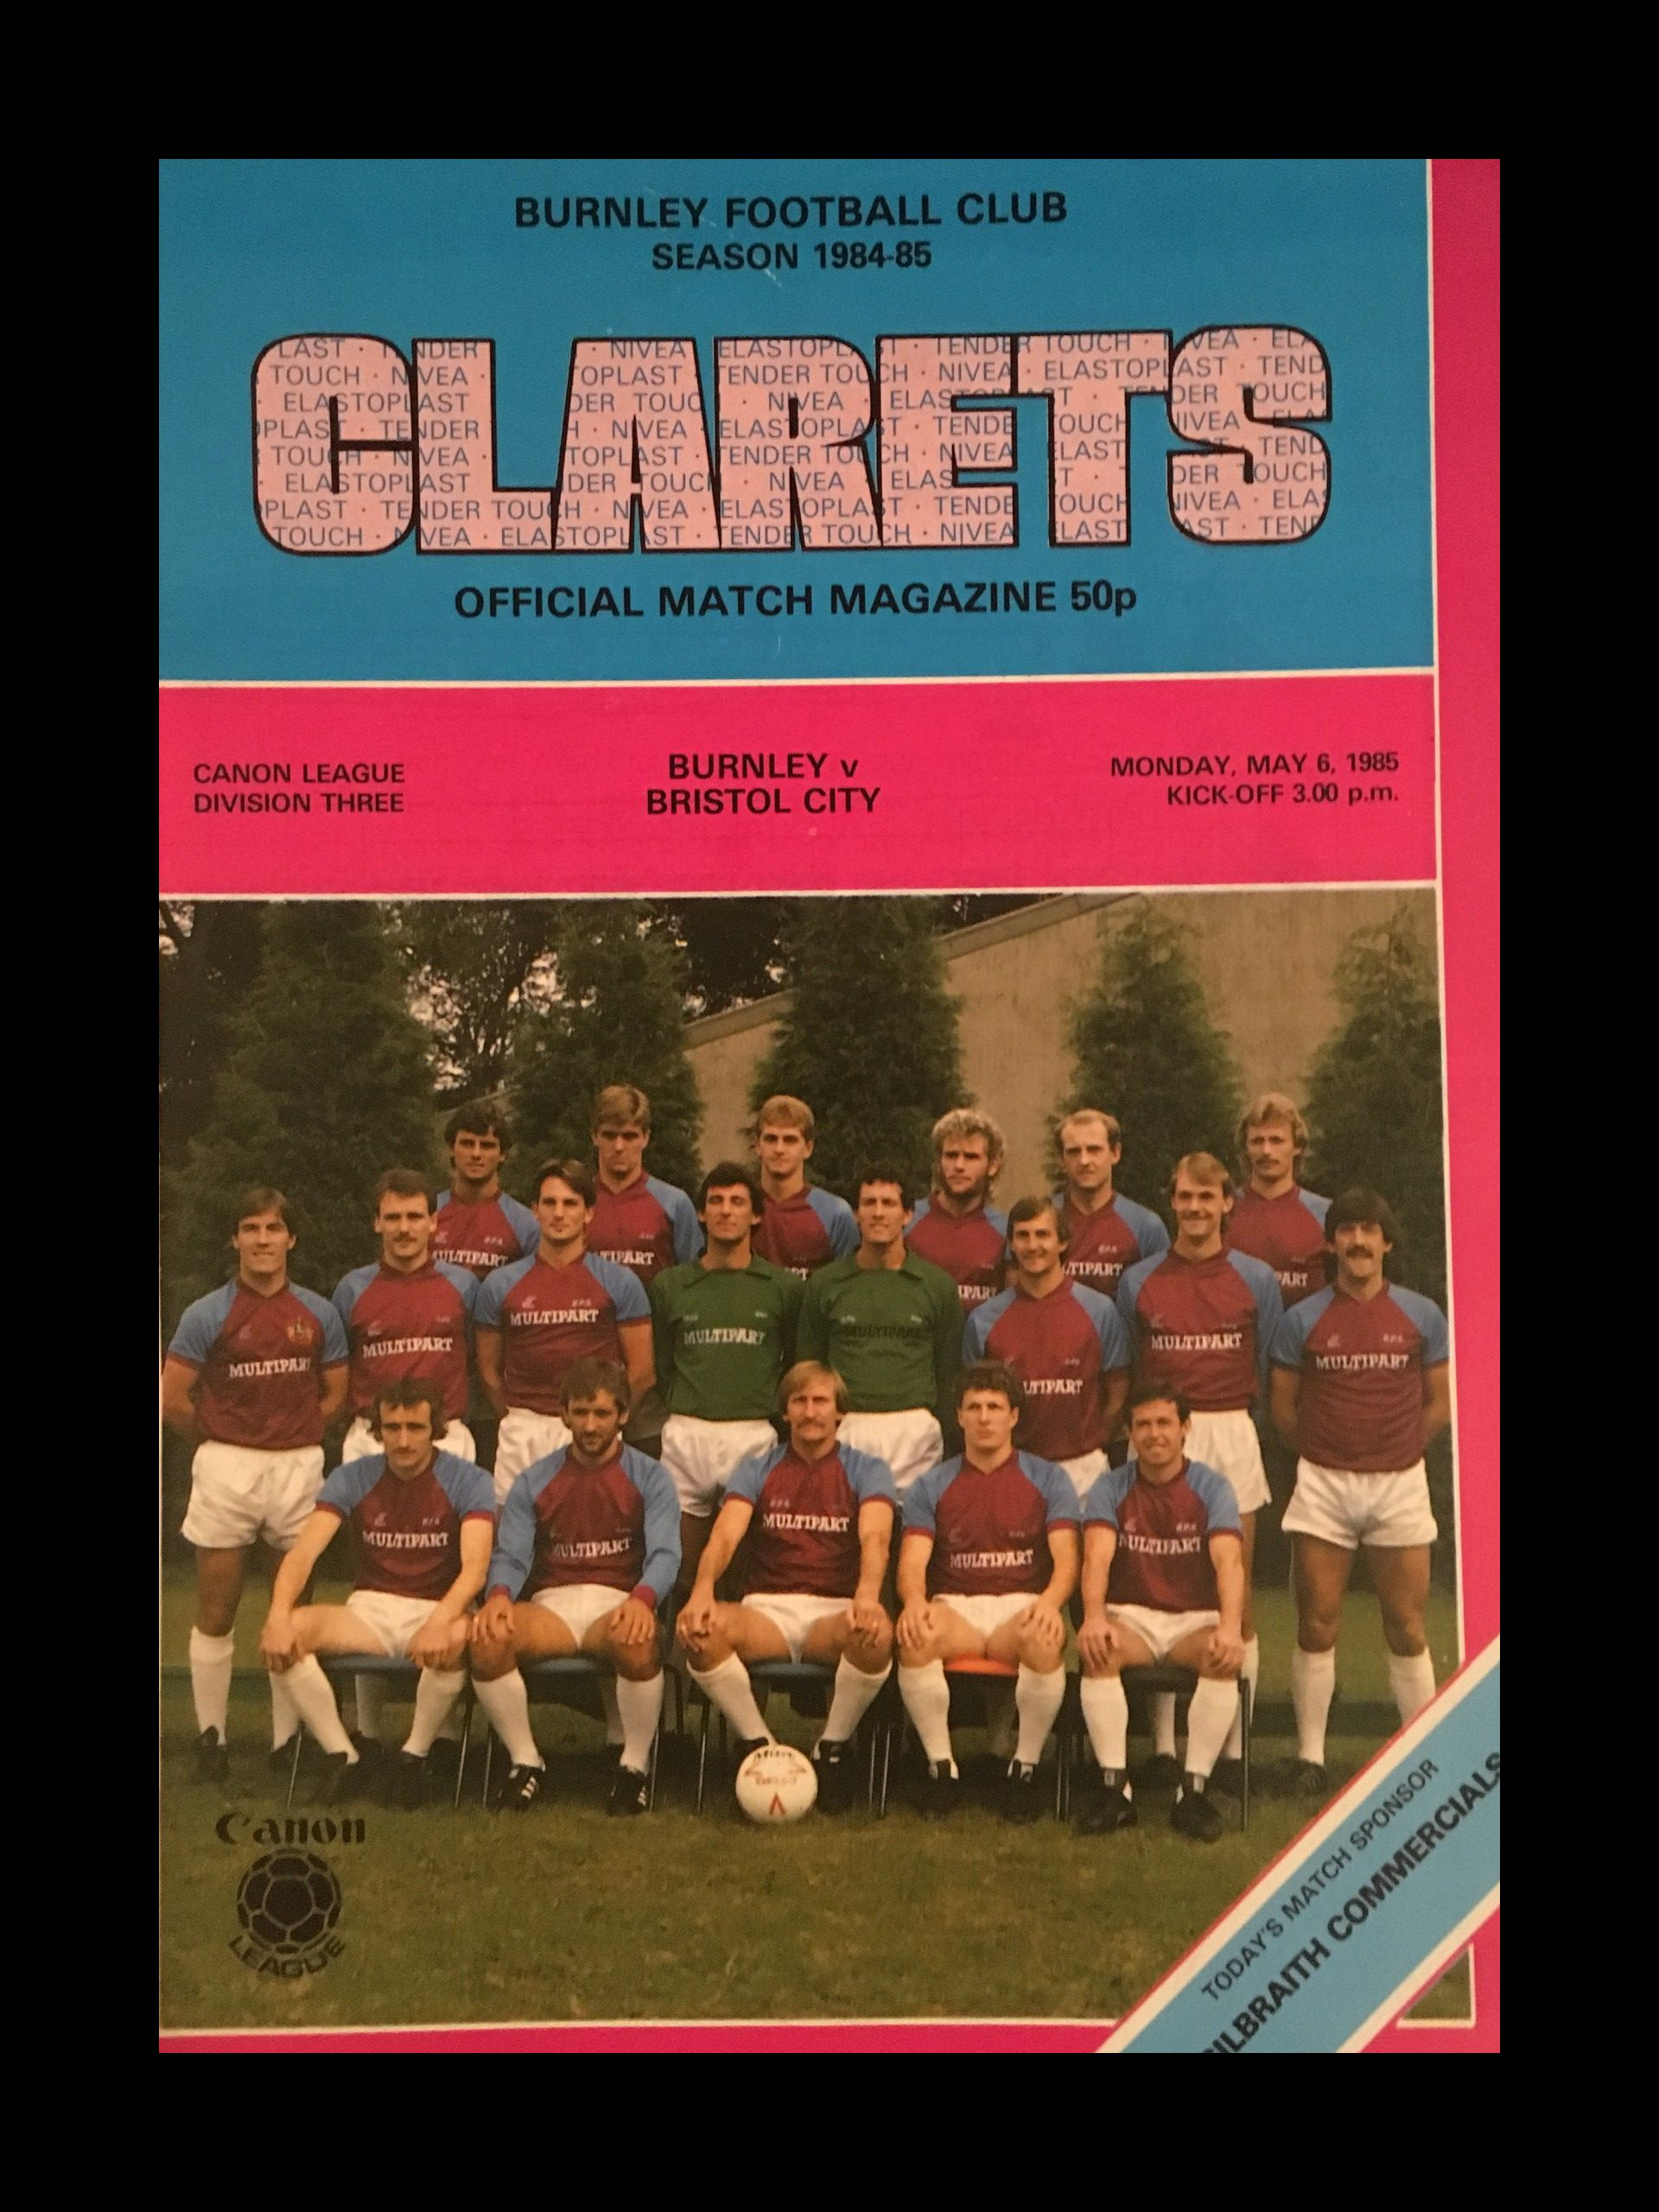 Burnley v Bristol City 06-05-85 Programme